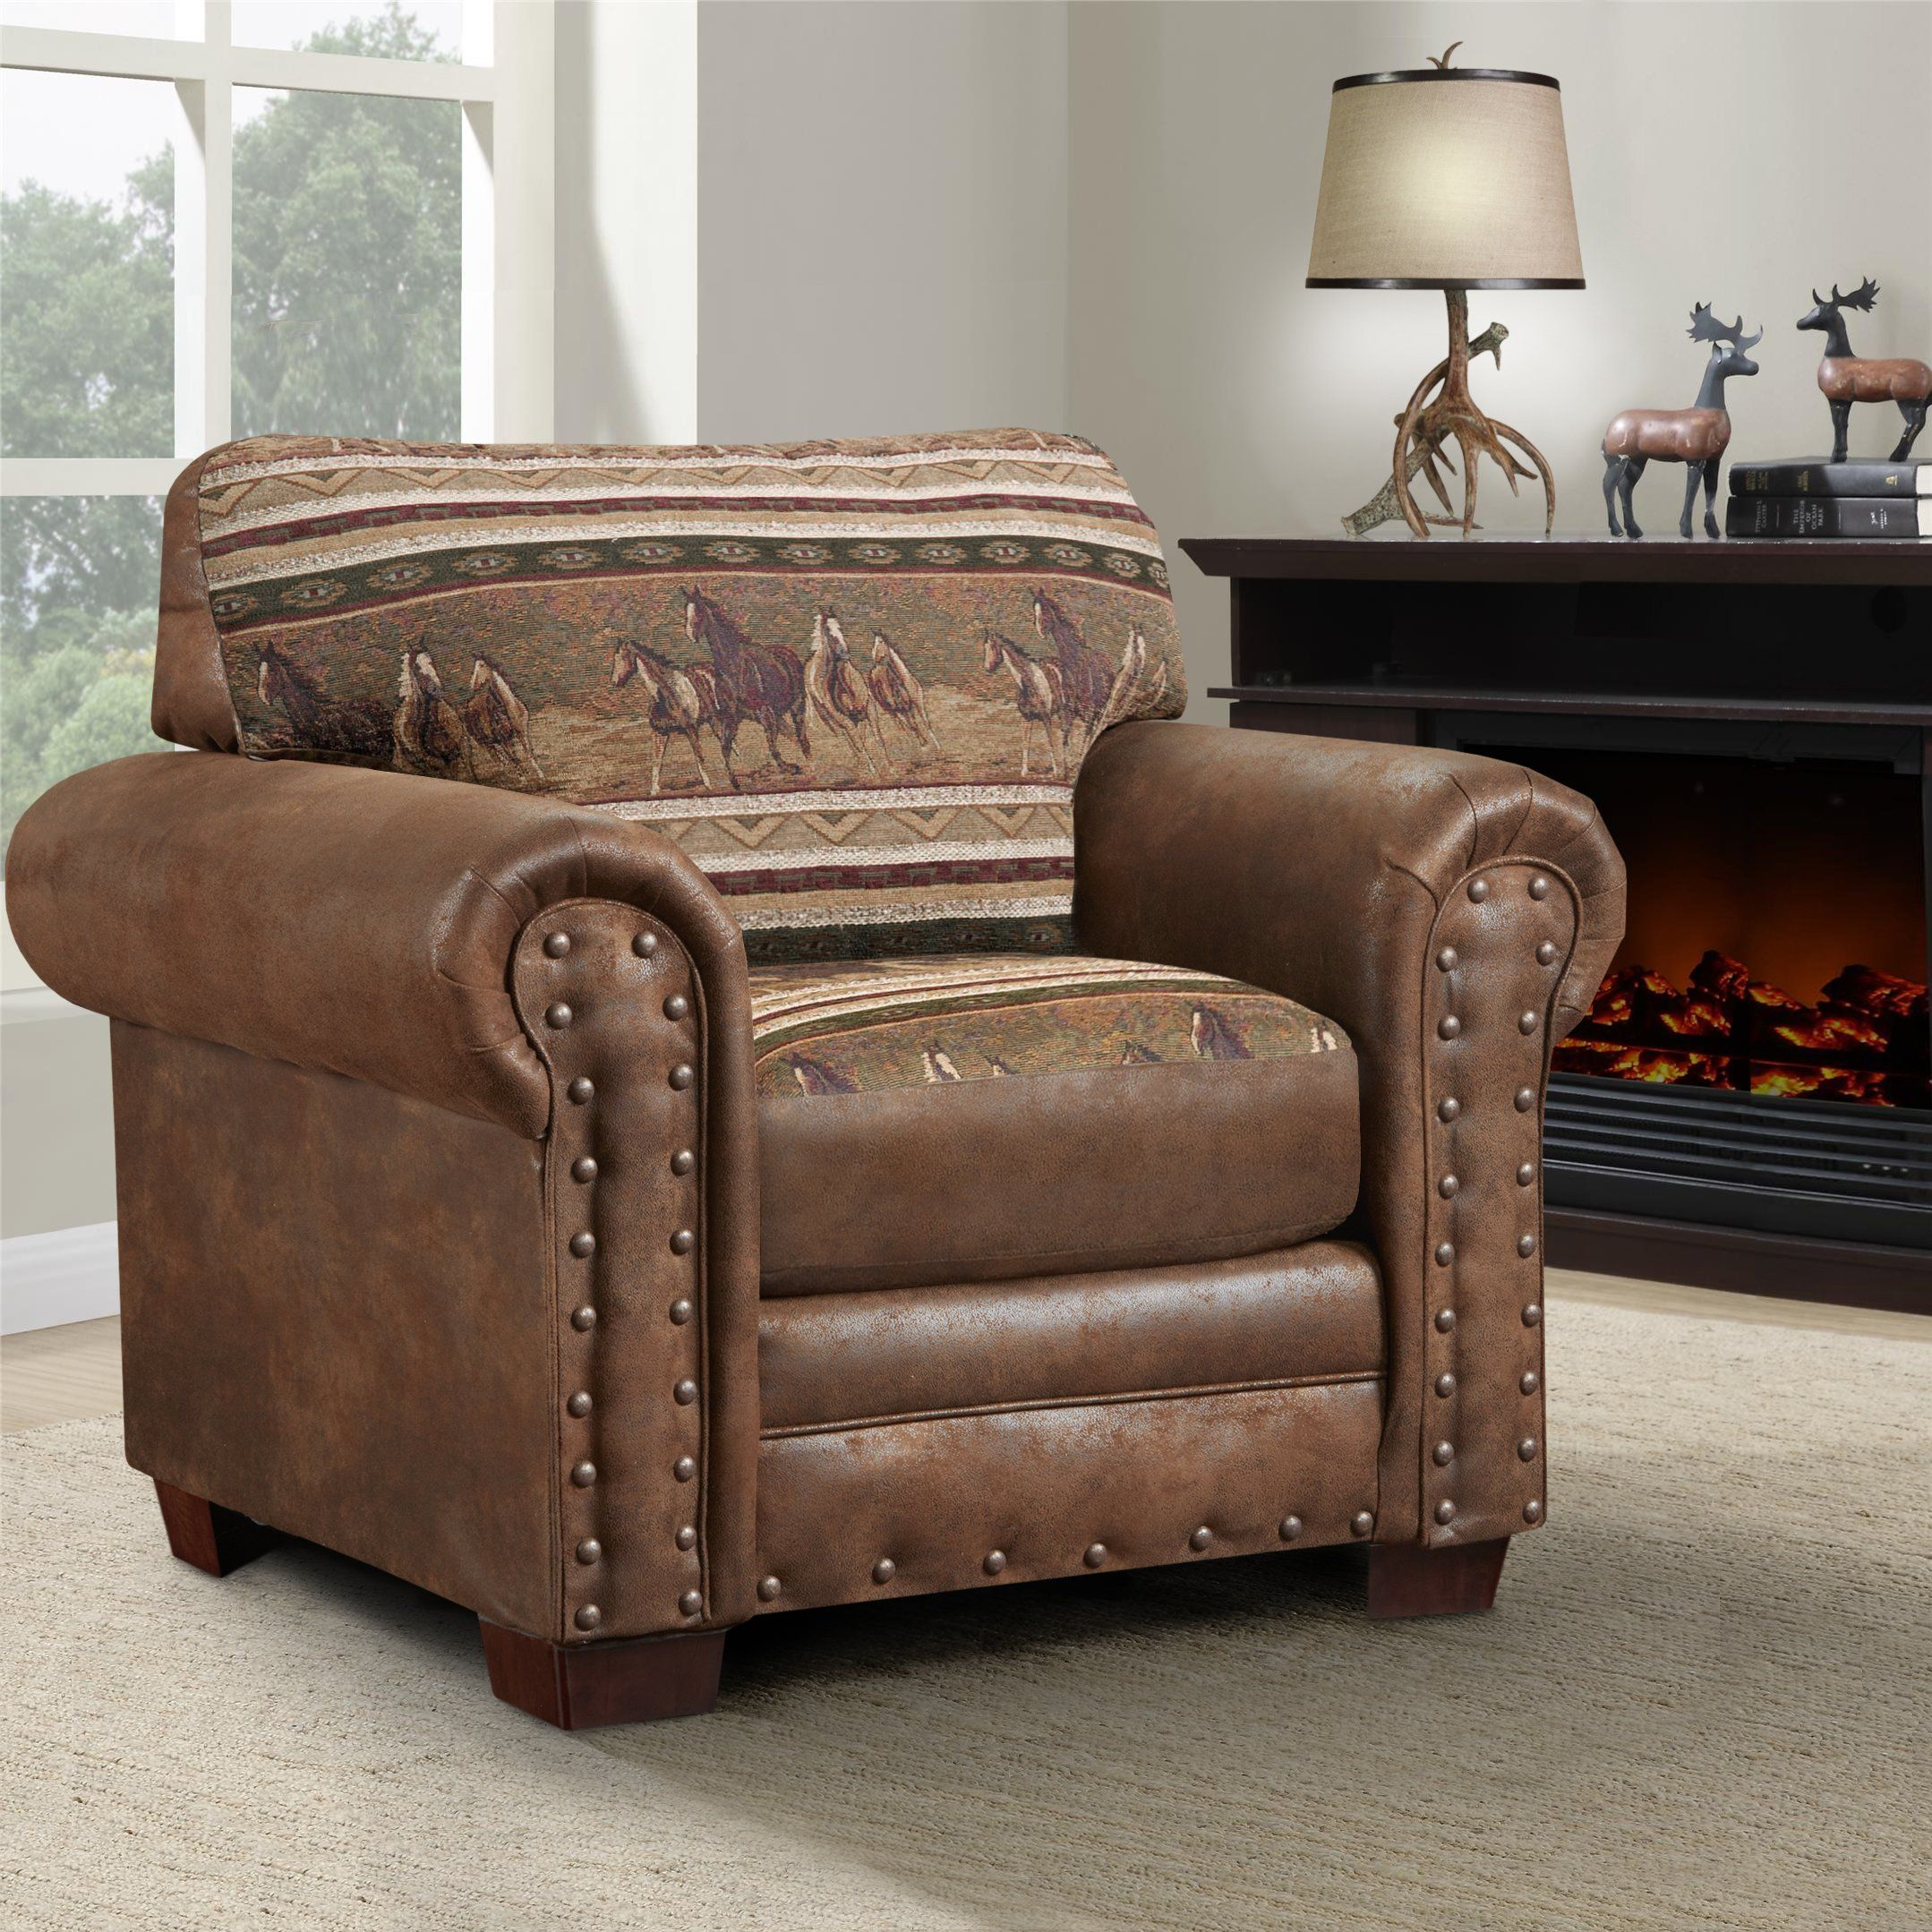 American Furniture Classics Wild Horses Chair Be Sure To Check